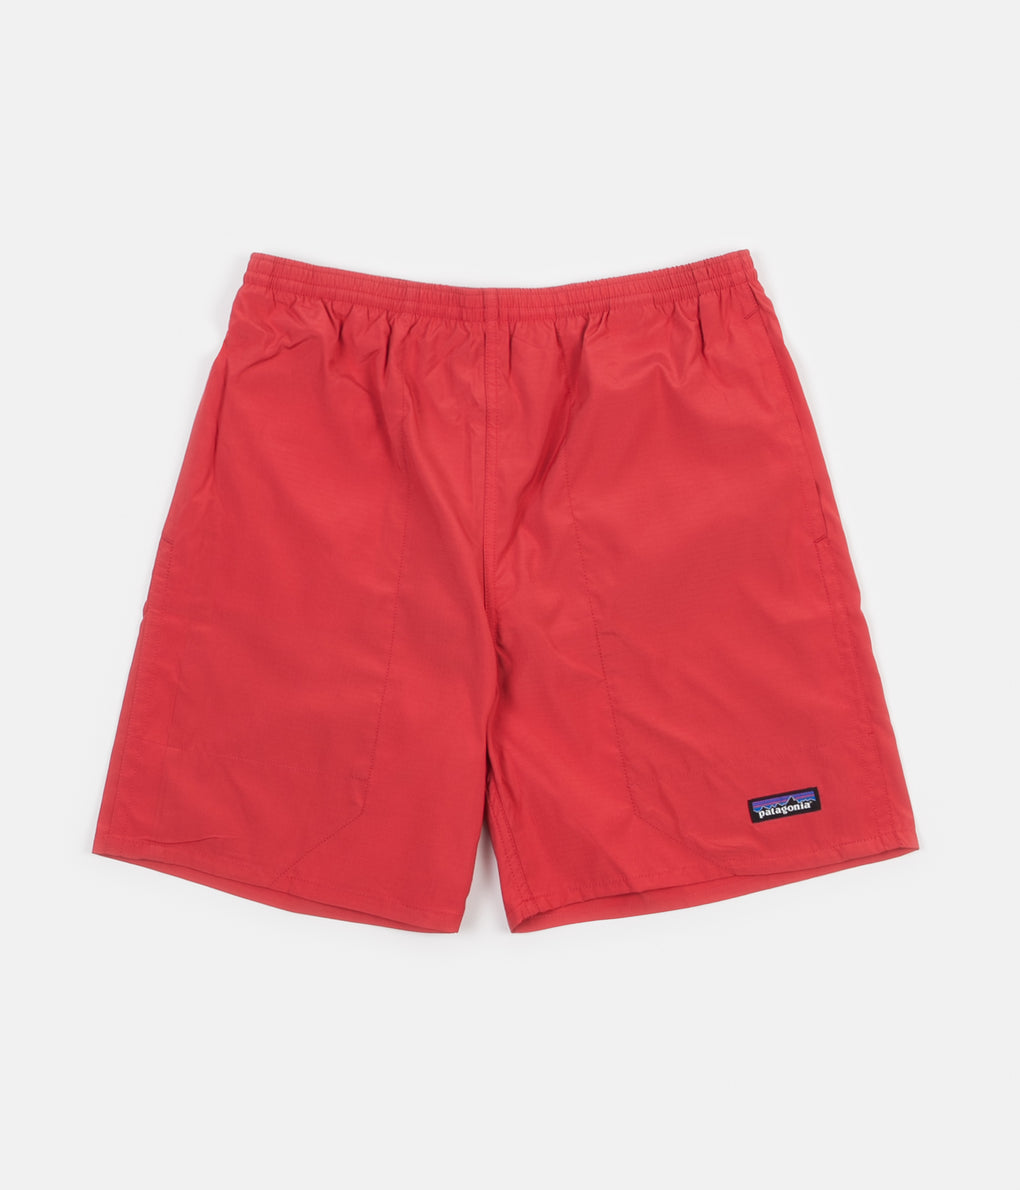 Patagonia Baggies Lights Shorts - Static Red